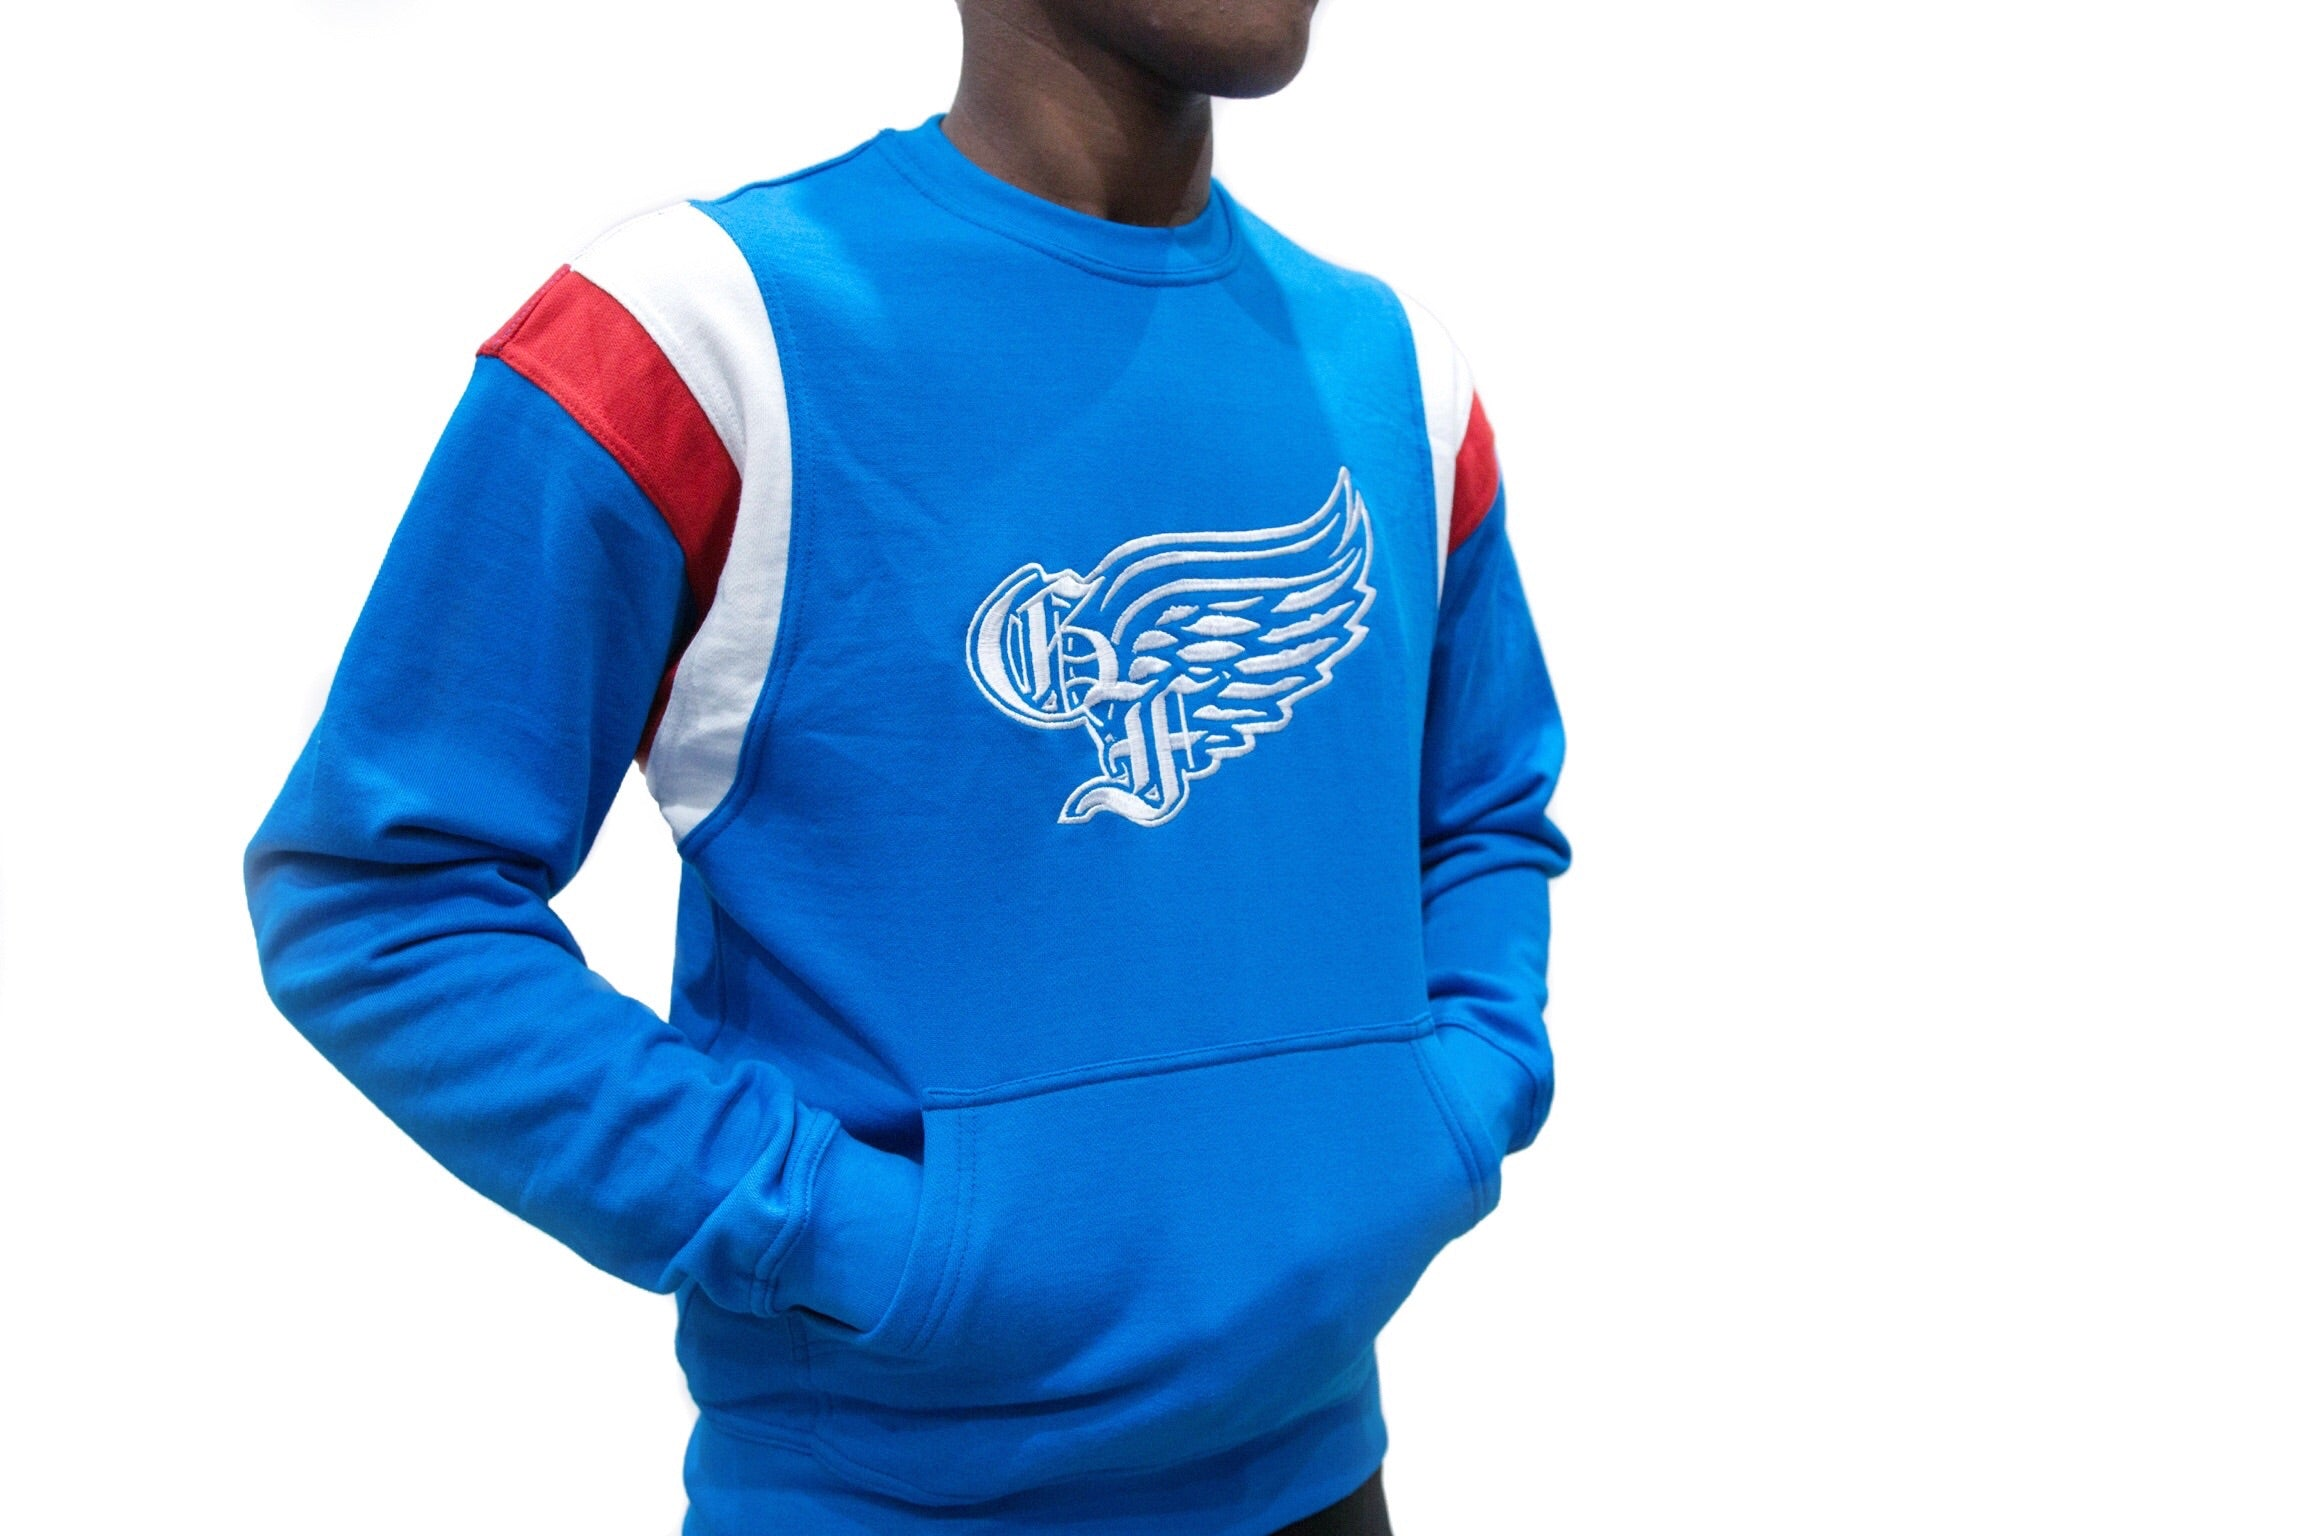 God First Signature Crewneck Sweater -Blue/White/Red